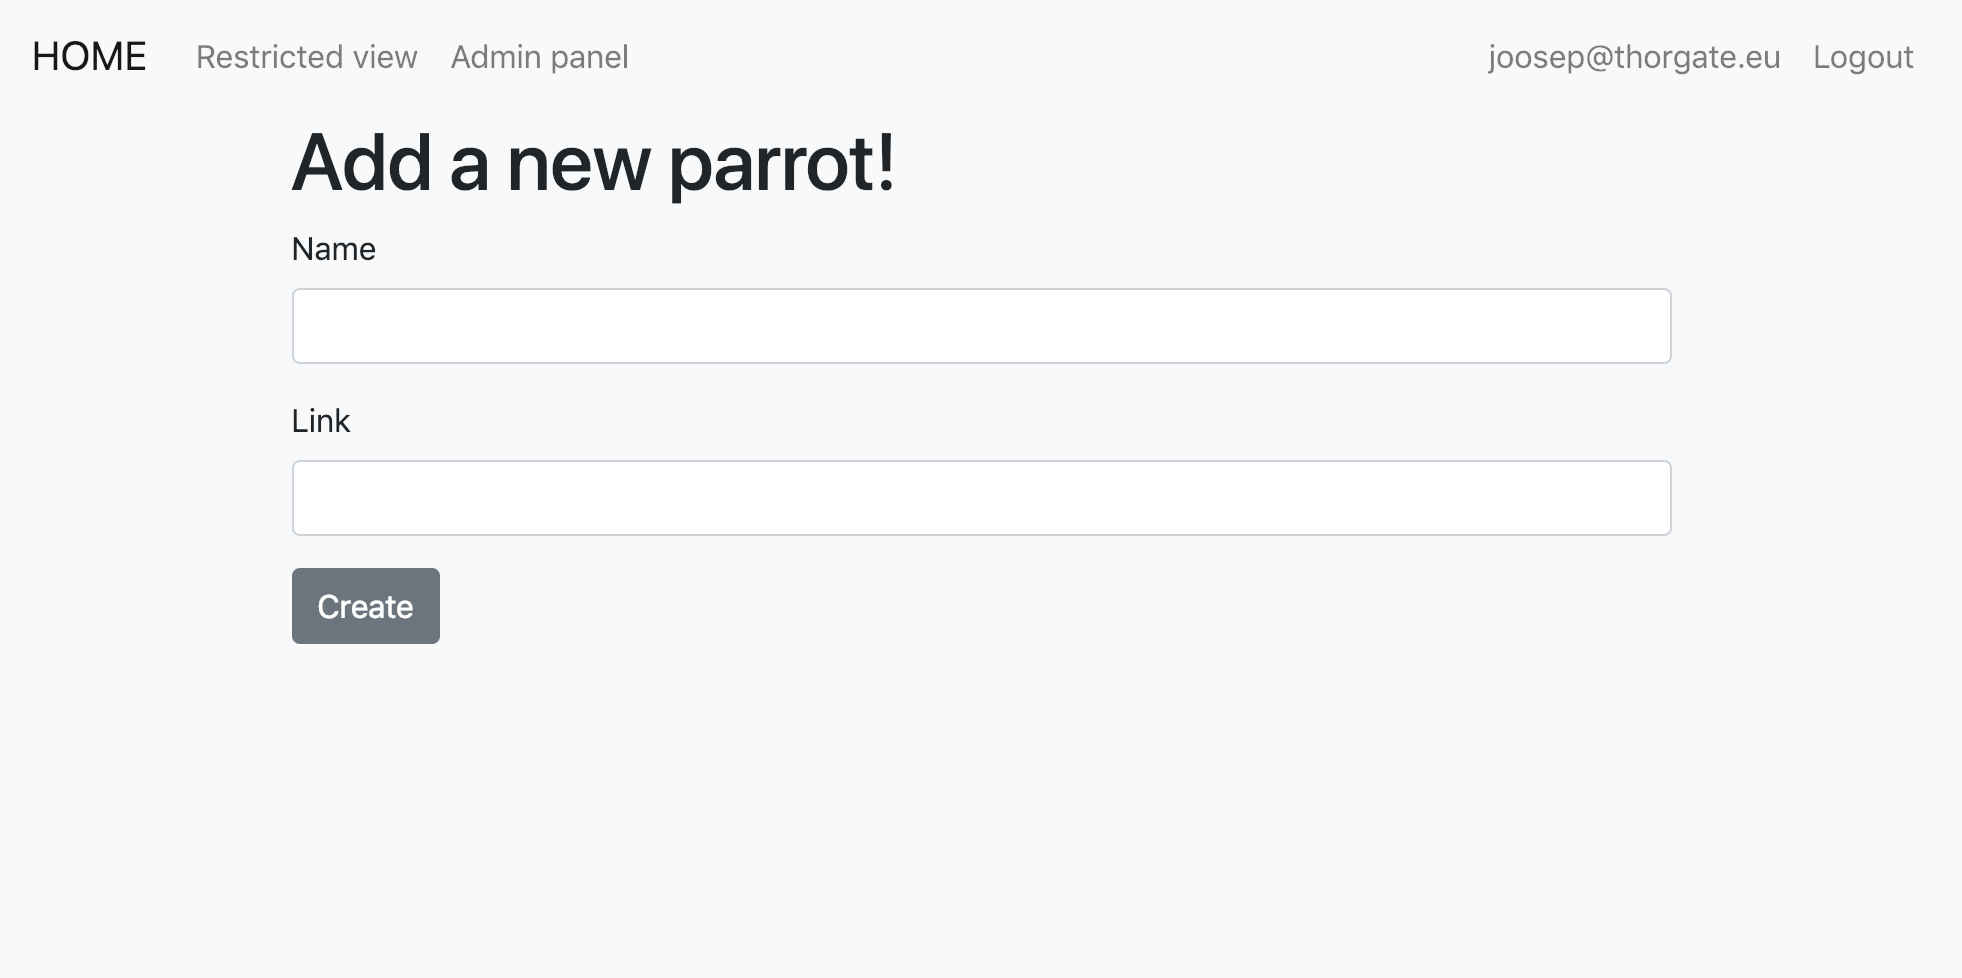 Form for creating a parrot